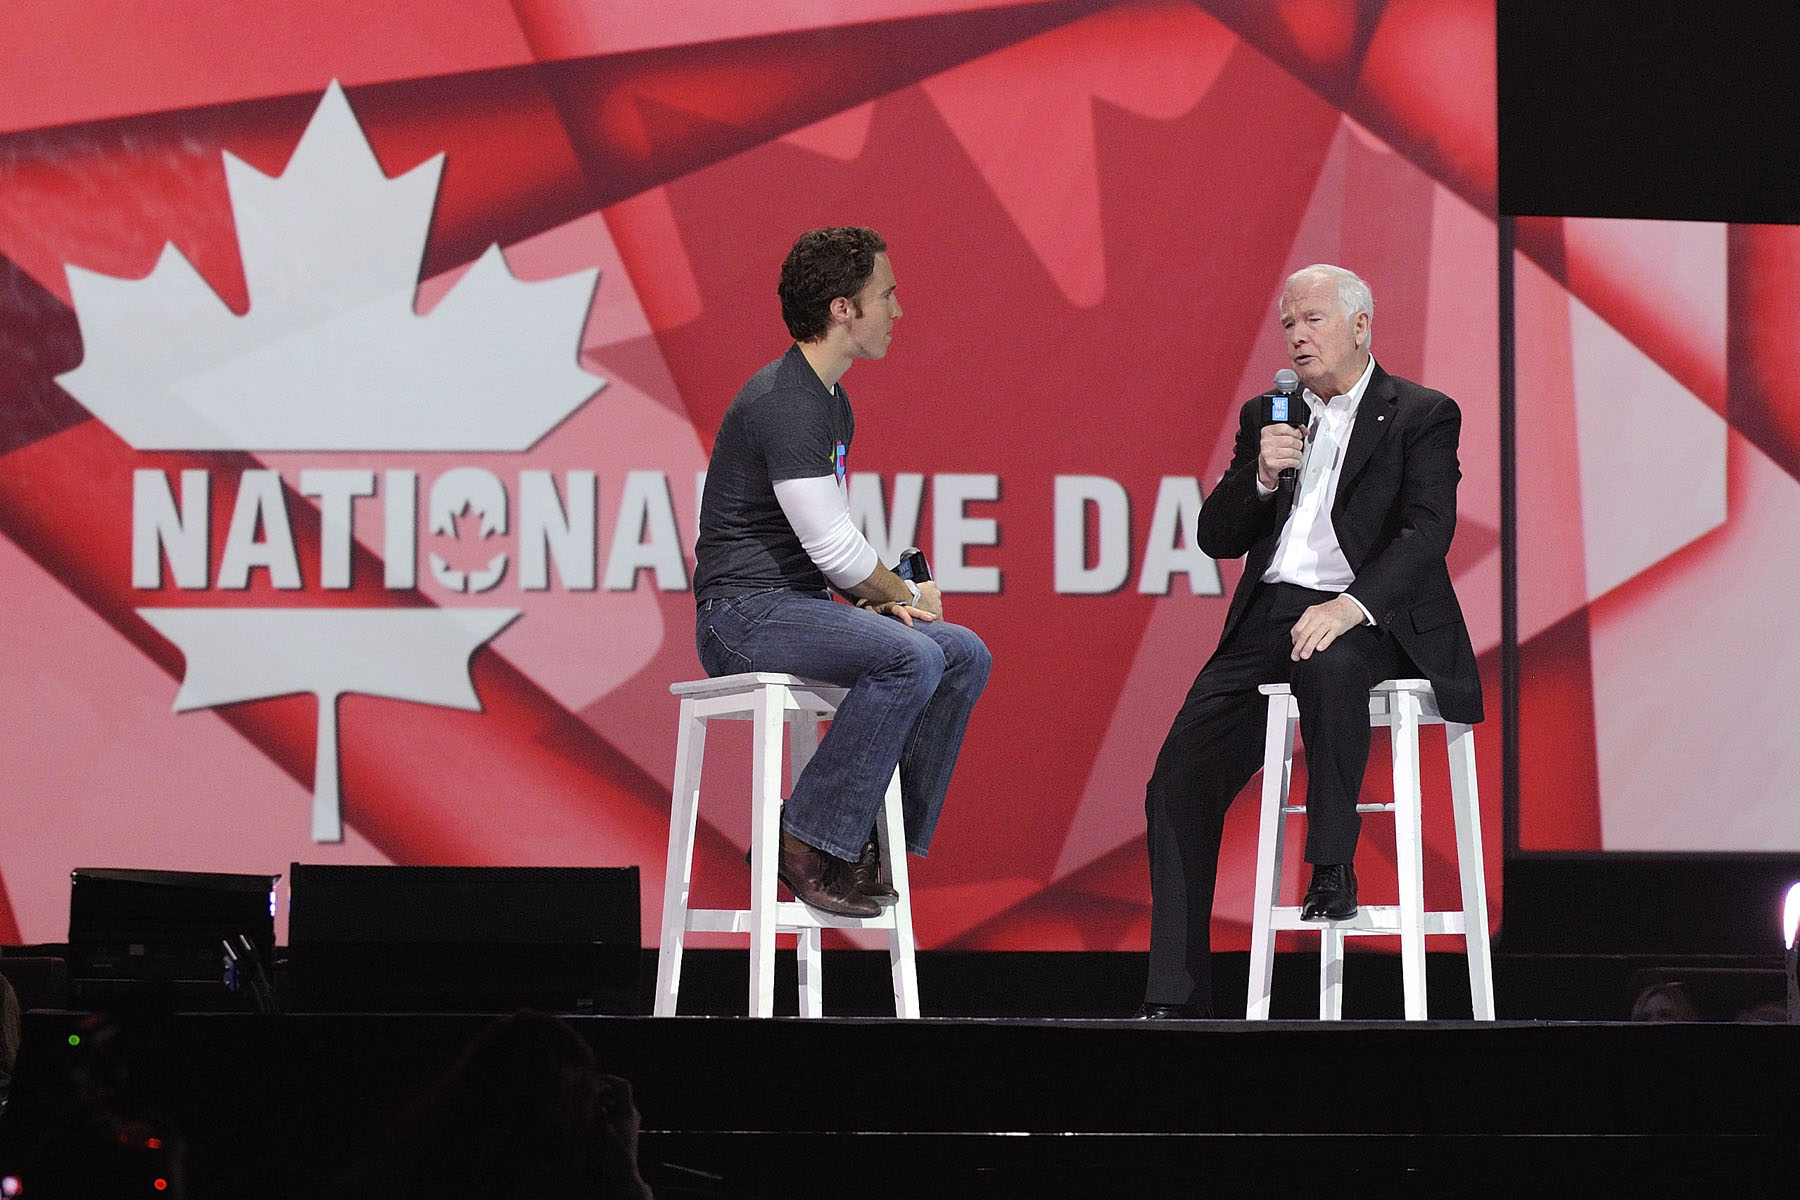 He shared his views on the importance of giving and volunteering in the community during an on-stage conversation with Craig Kielburger, co-founder of Free the Children, before an audience of 16 000 youth and educators.